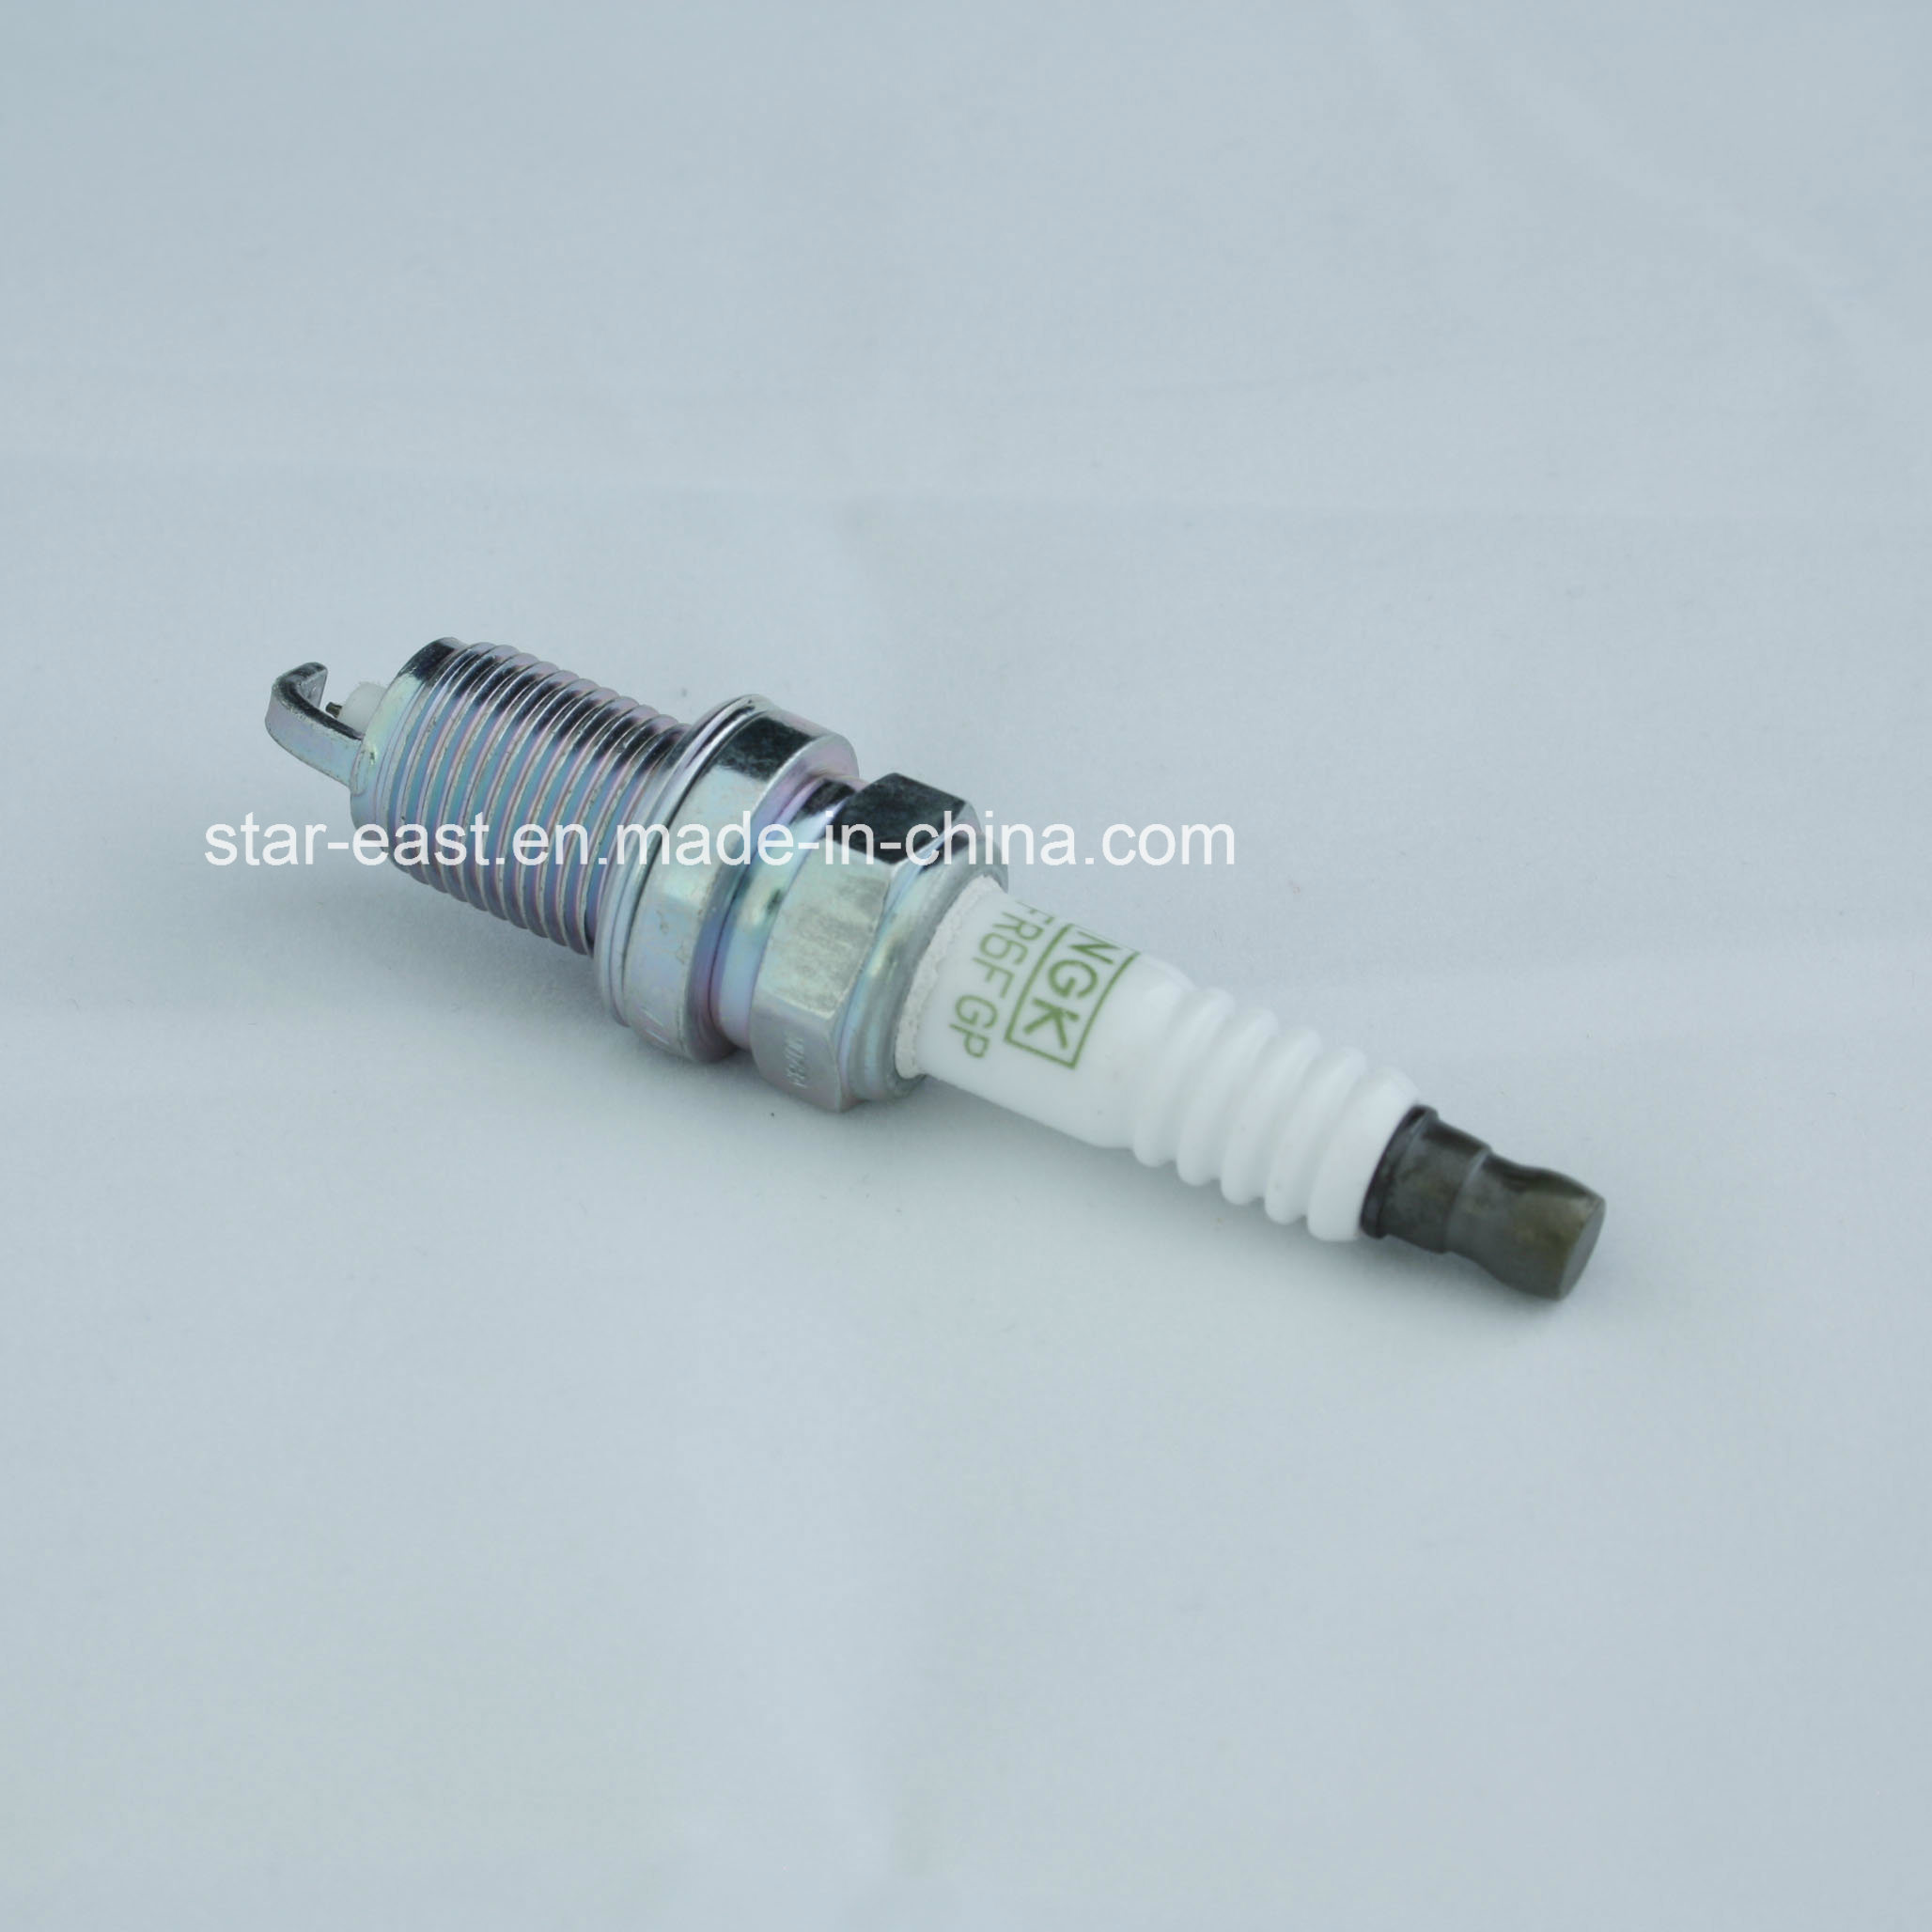 Hight Quality Spark Plug for Ngk Zfr6fgp Honda/Mazda pictures & photos